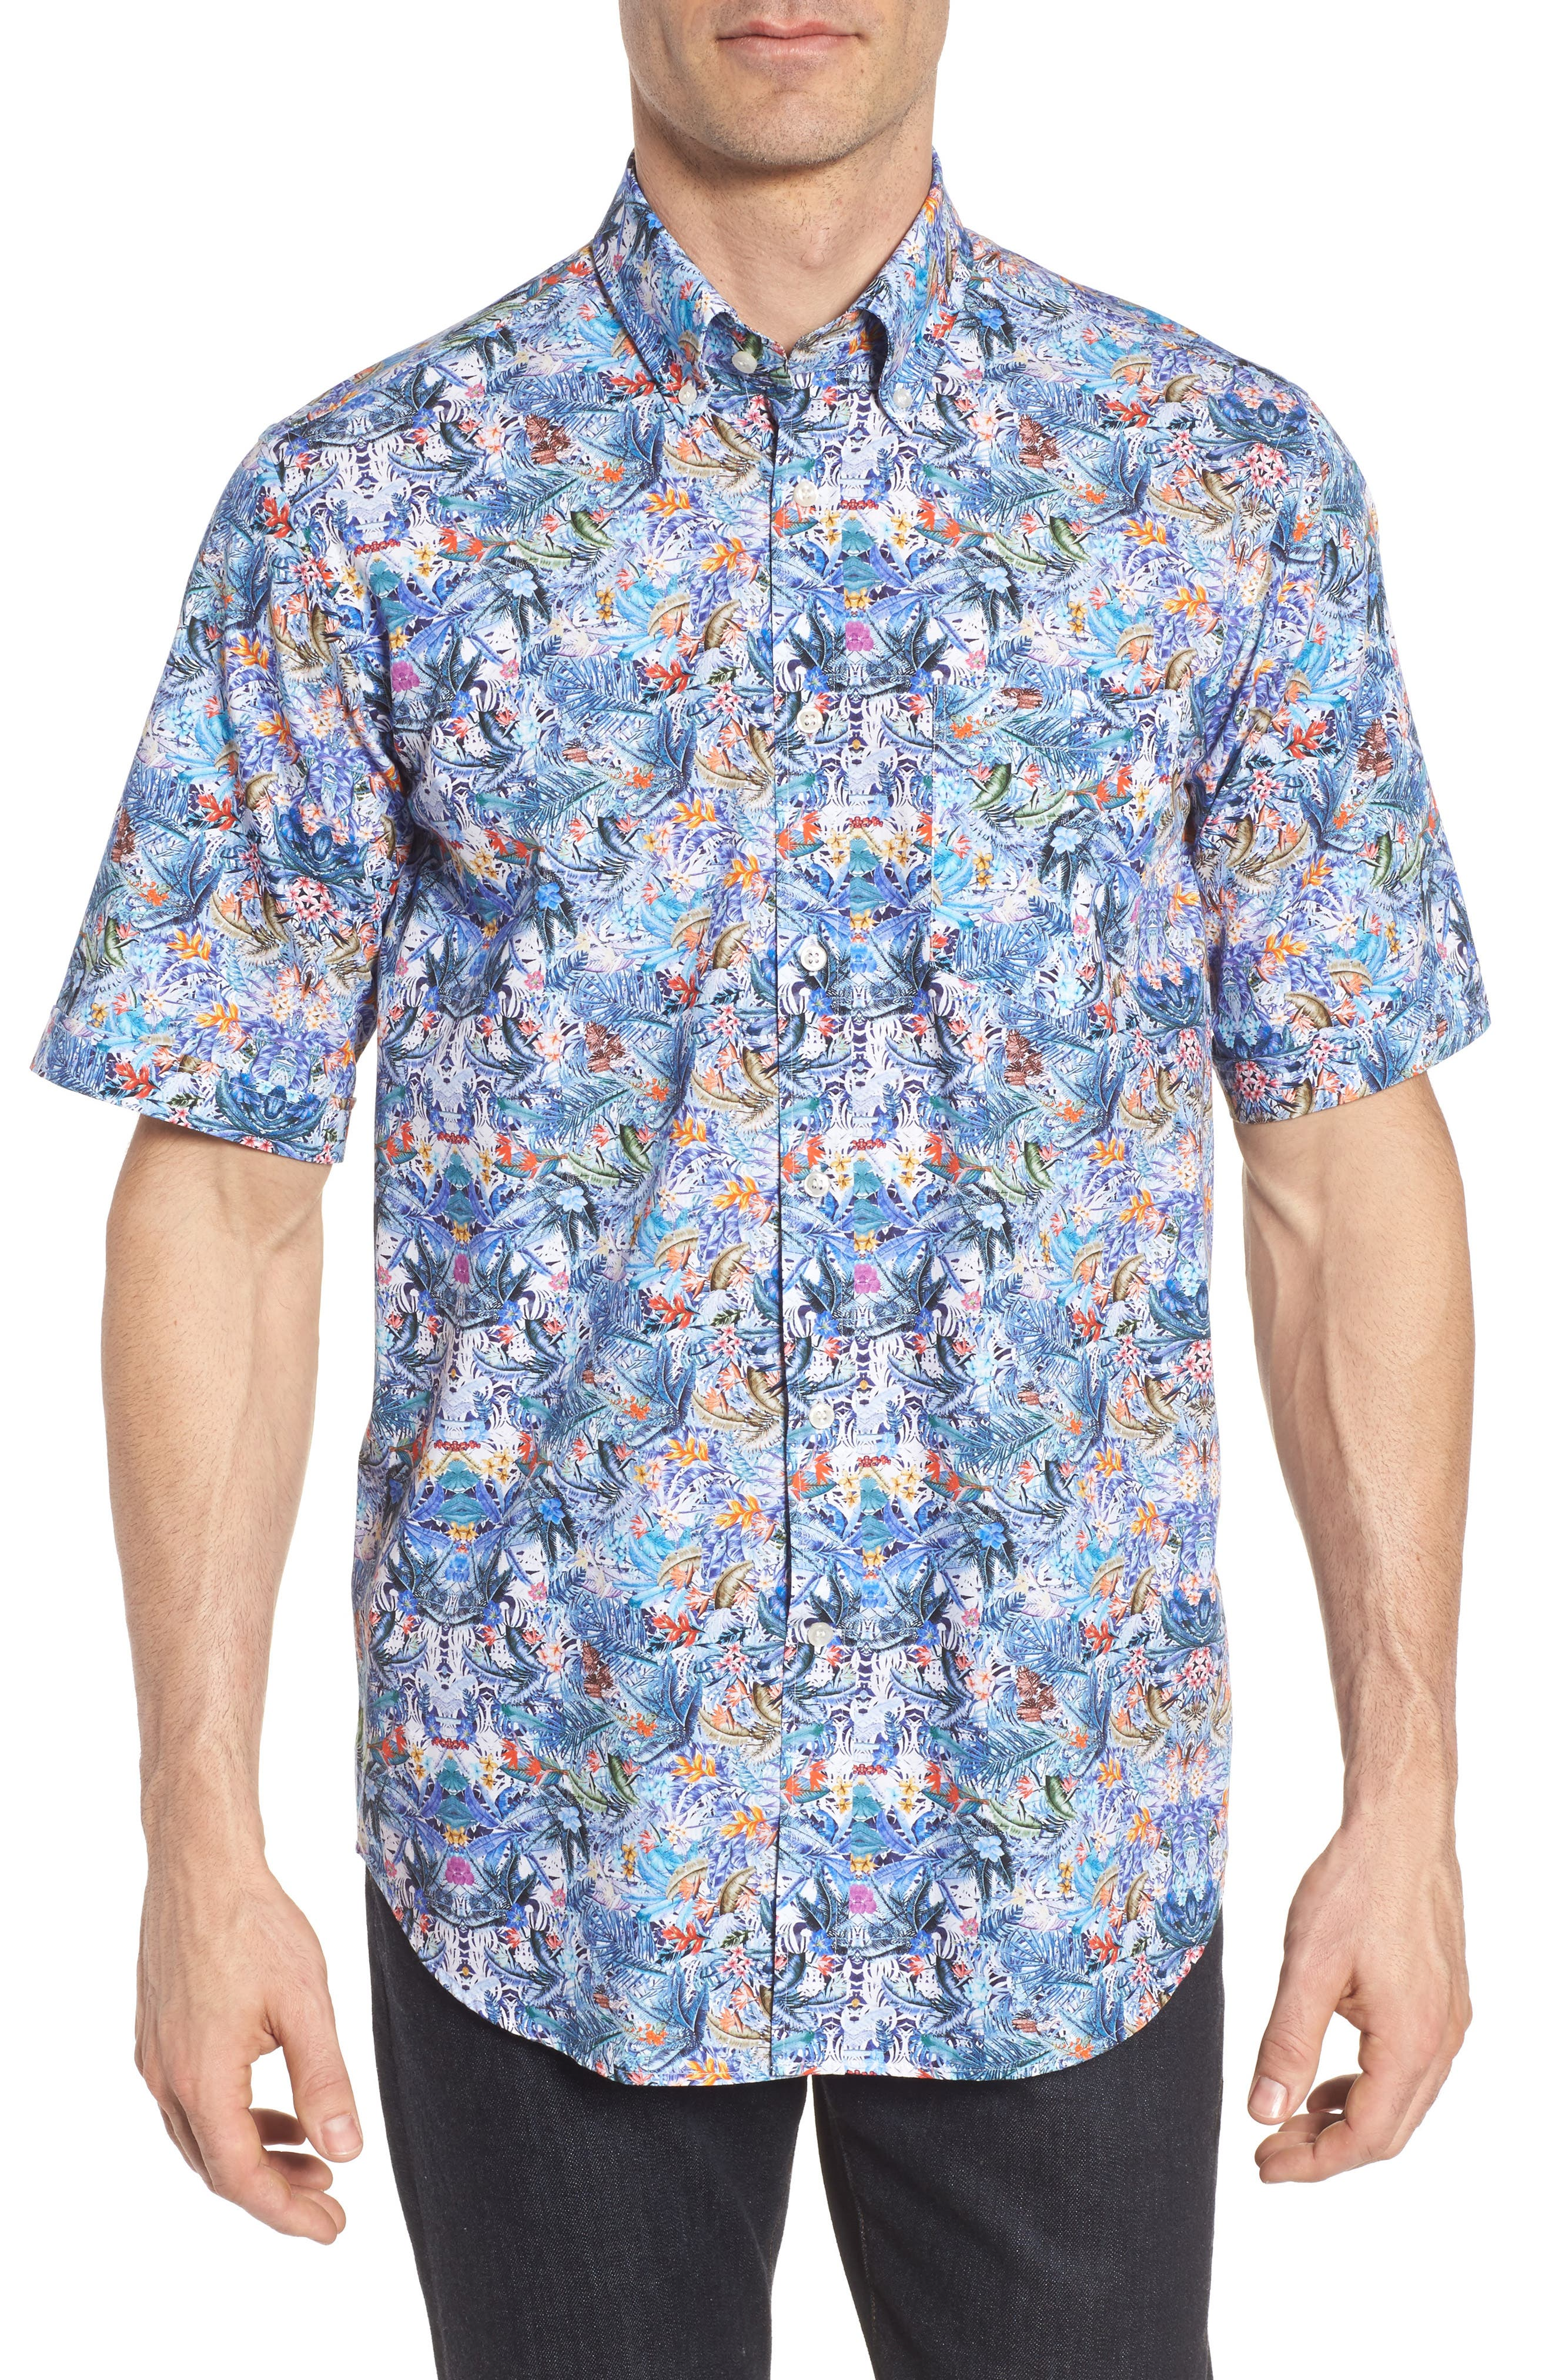 Paul&Shark Regular Fit Tropical Print Sport Shirt,                         Main,                         color, 101